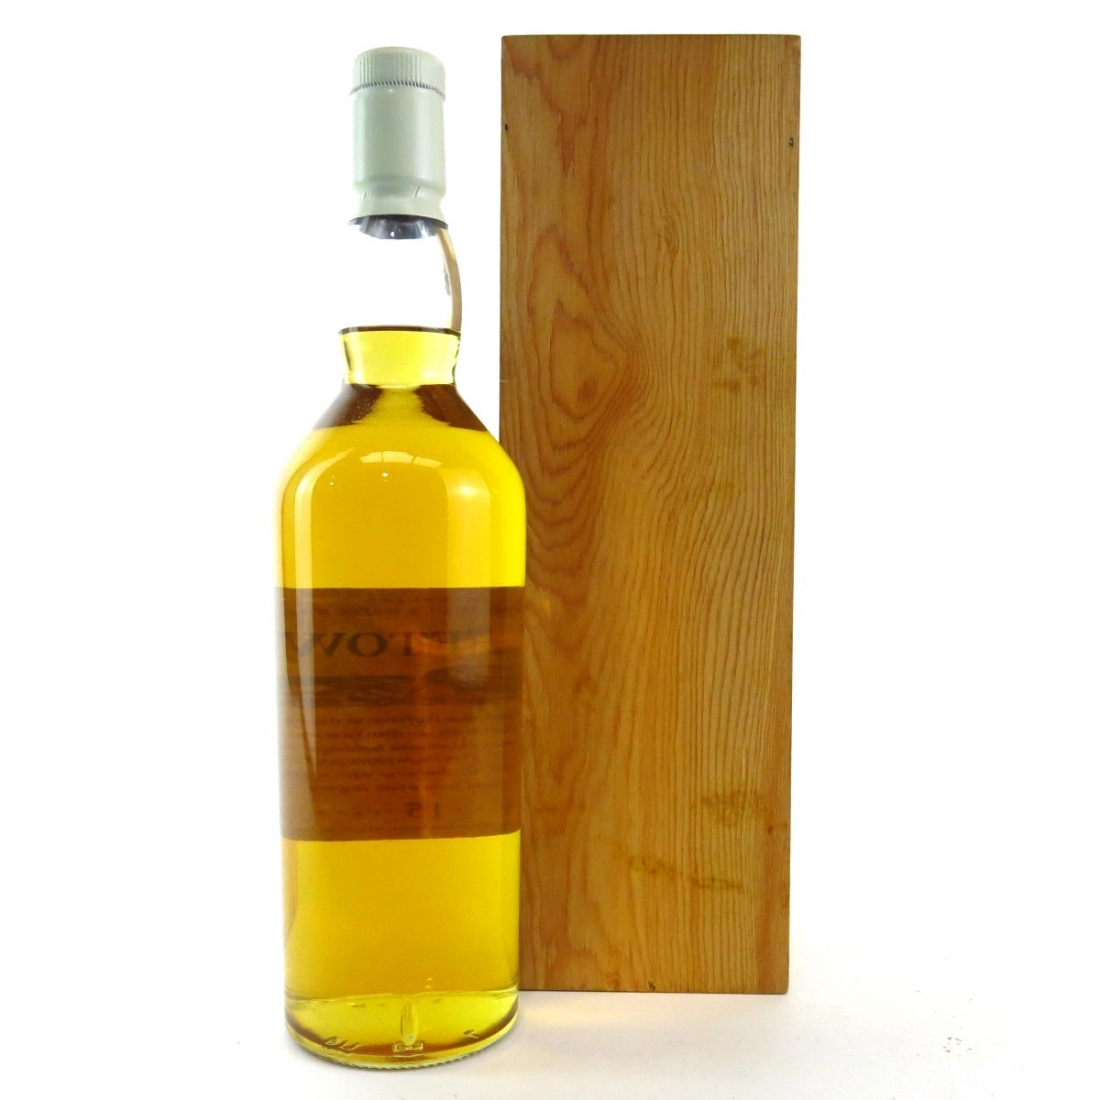 Dufftown 15 Year Old Flora and Fauna White Cap / Wooden Box